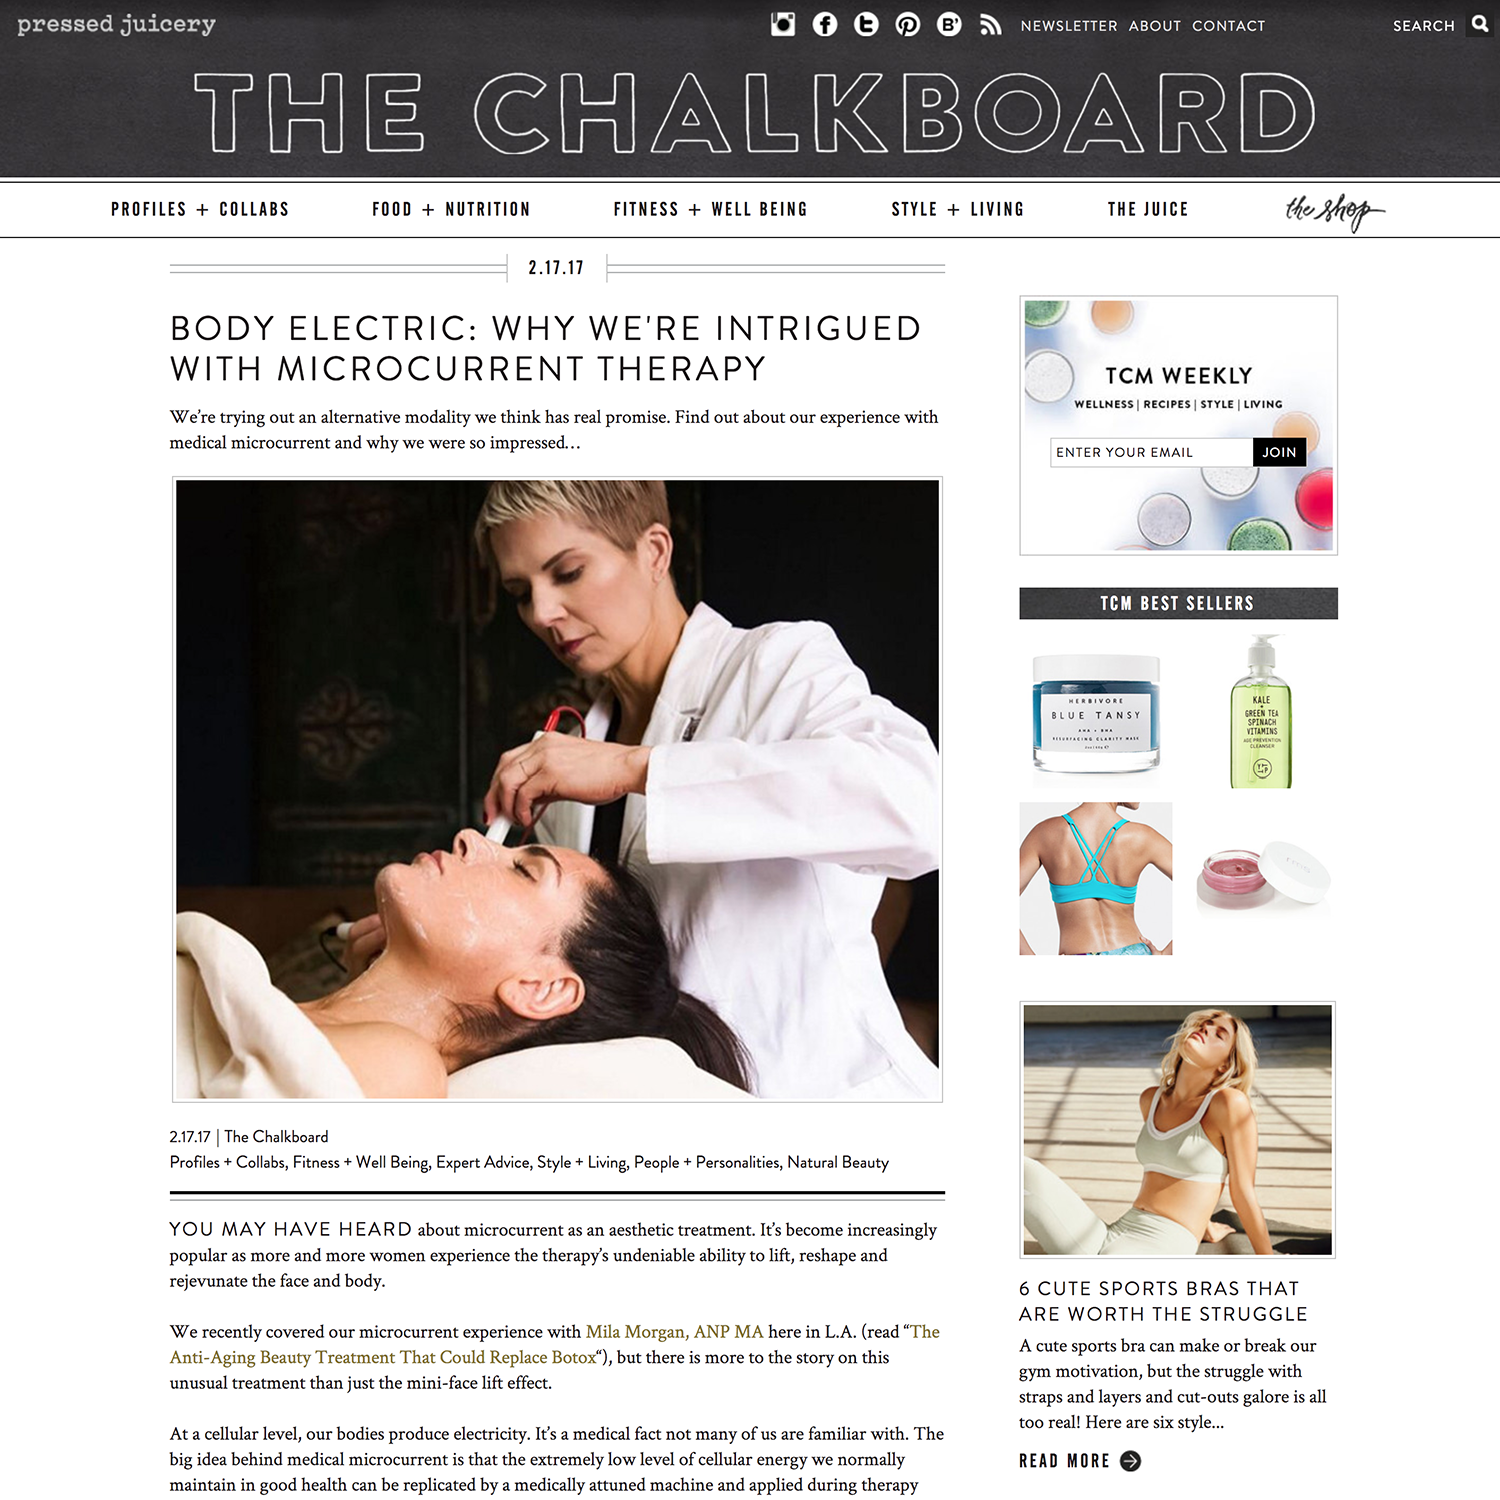 Chalkboard - Why We're Intrigued by Microcurrent Therapy - Mila Morgan Studio